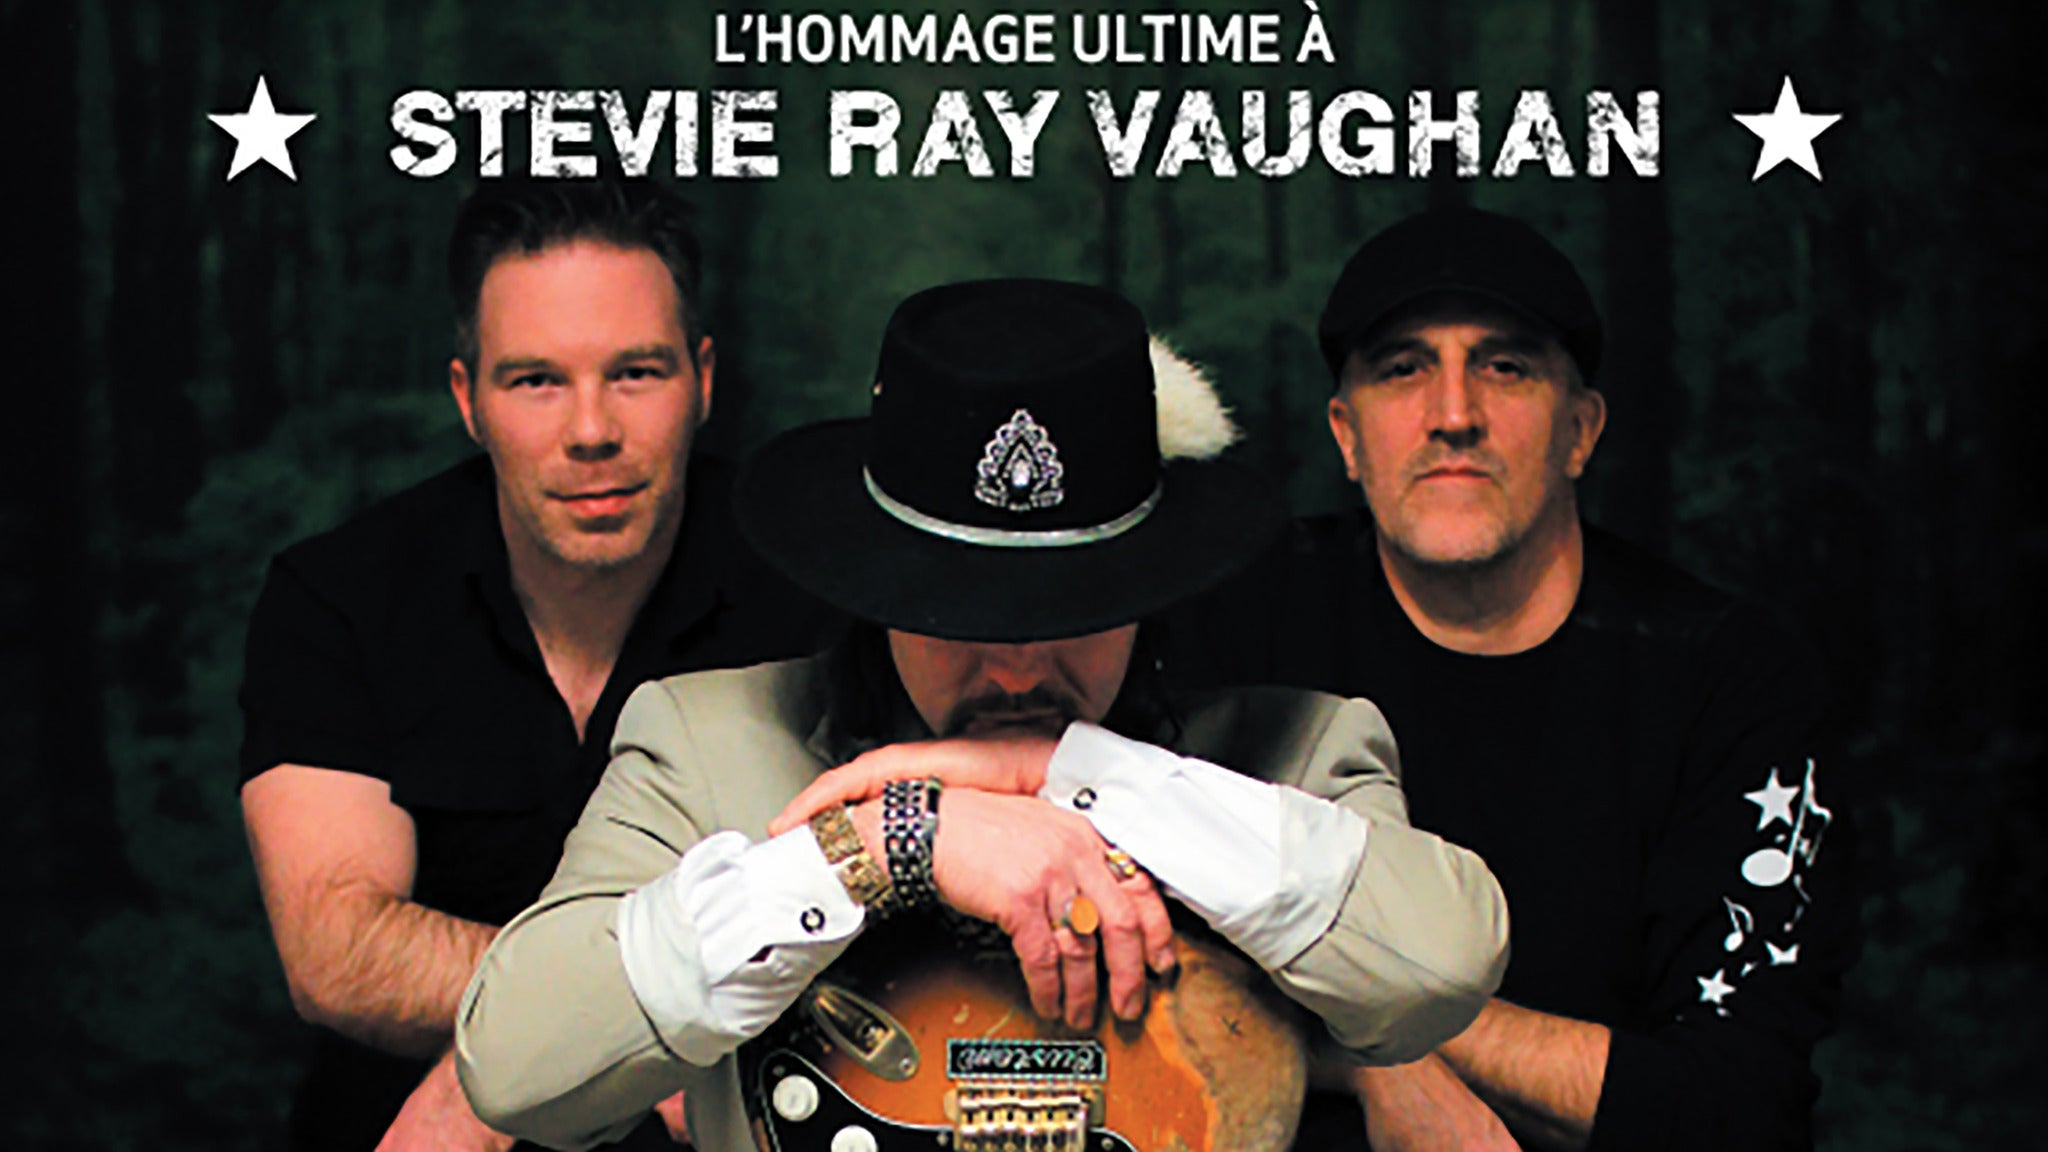 KSHE 95 Welcomes: Stevie Ray Vaughan Tribute at The Pageant